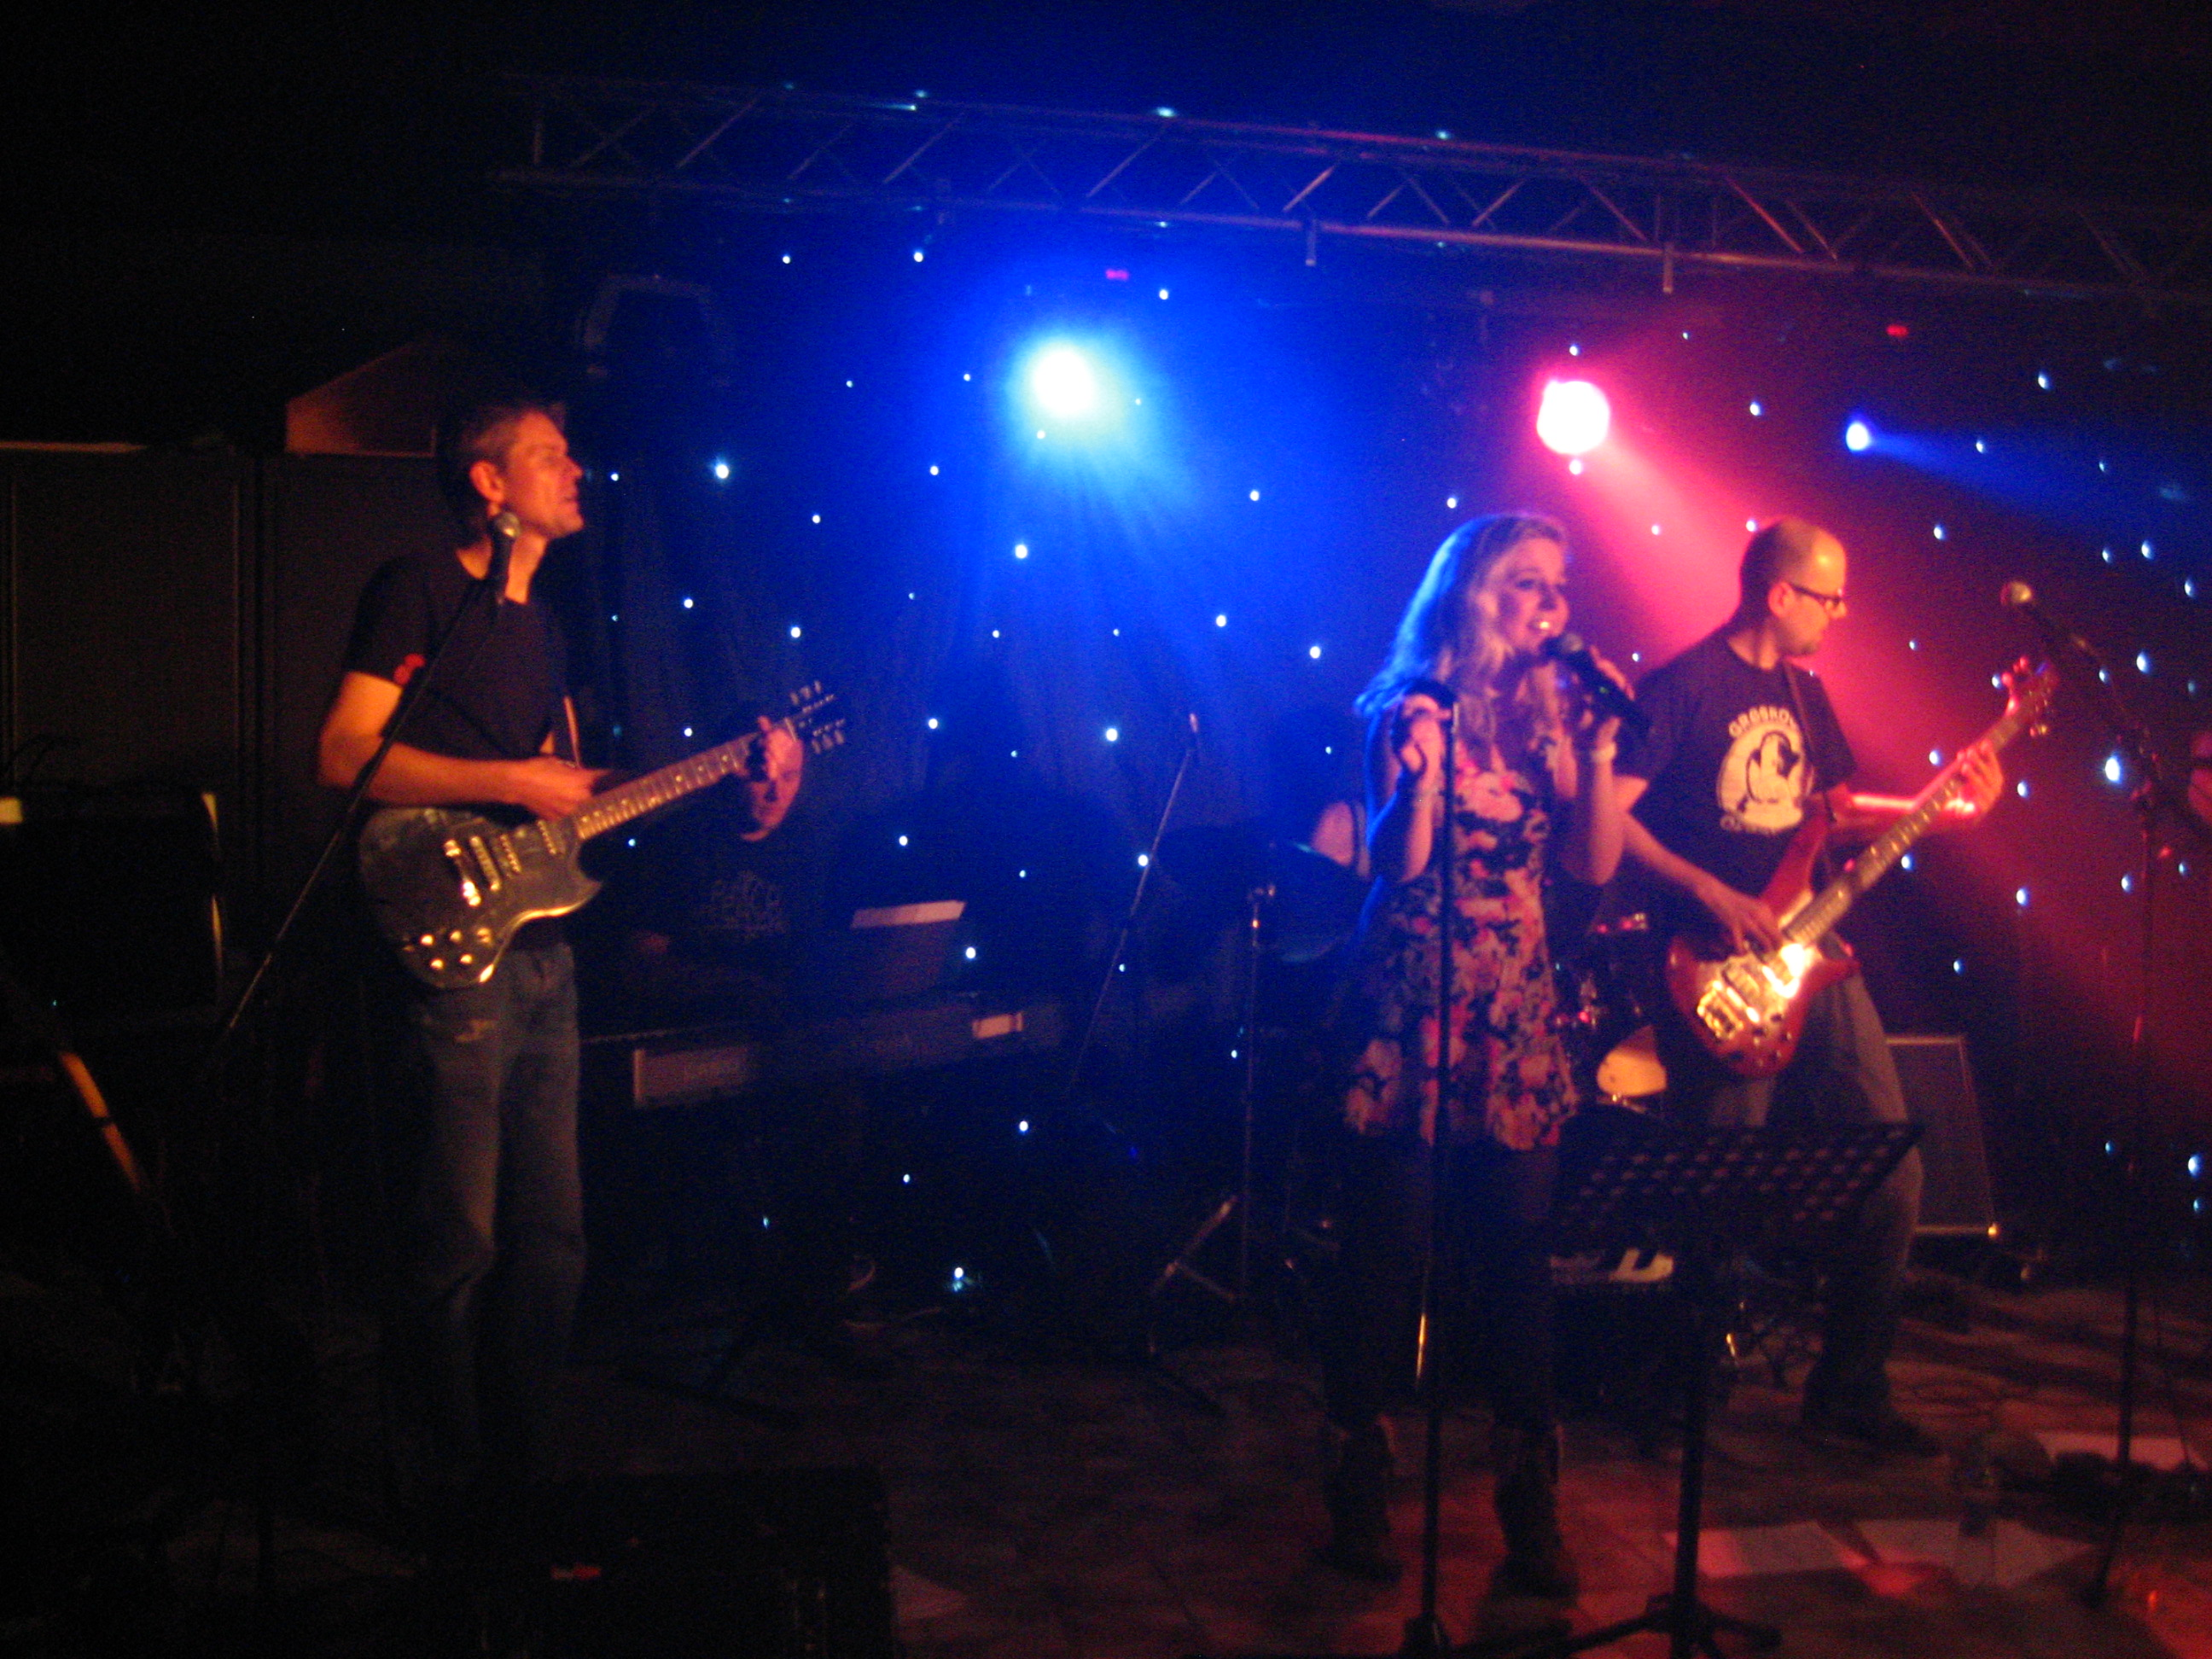 Local Speed Delivery - coverband